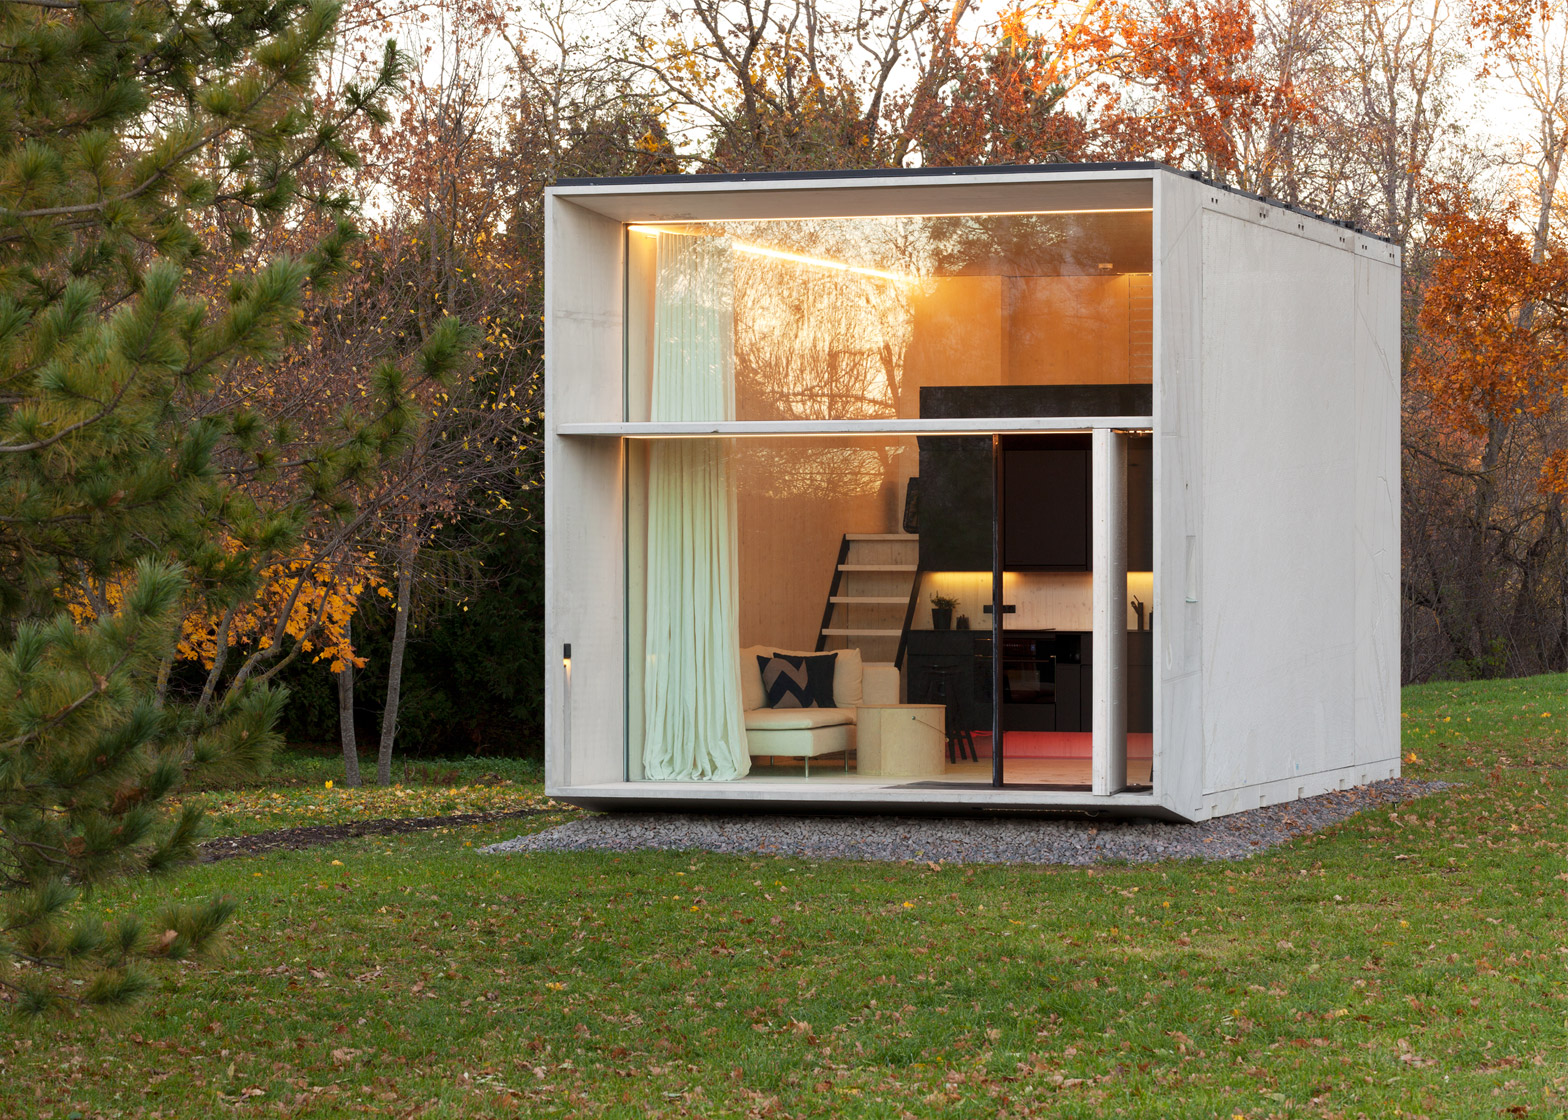 Sensational Kodasema Creates Tiny Prefab House That Moves With Its Owners Largest Home Design Picture Inspirations Pitcheantrous